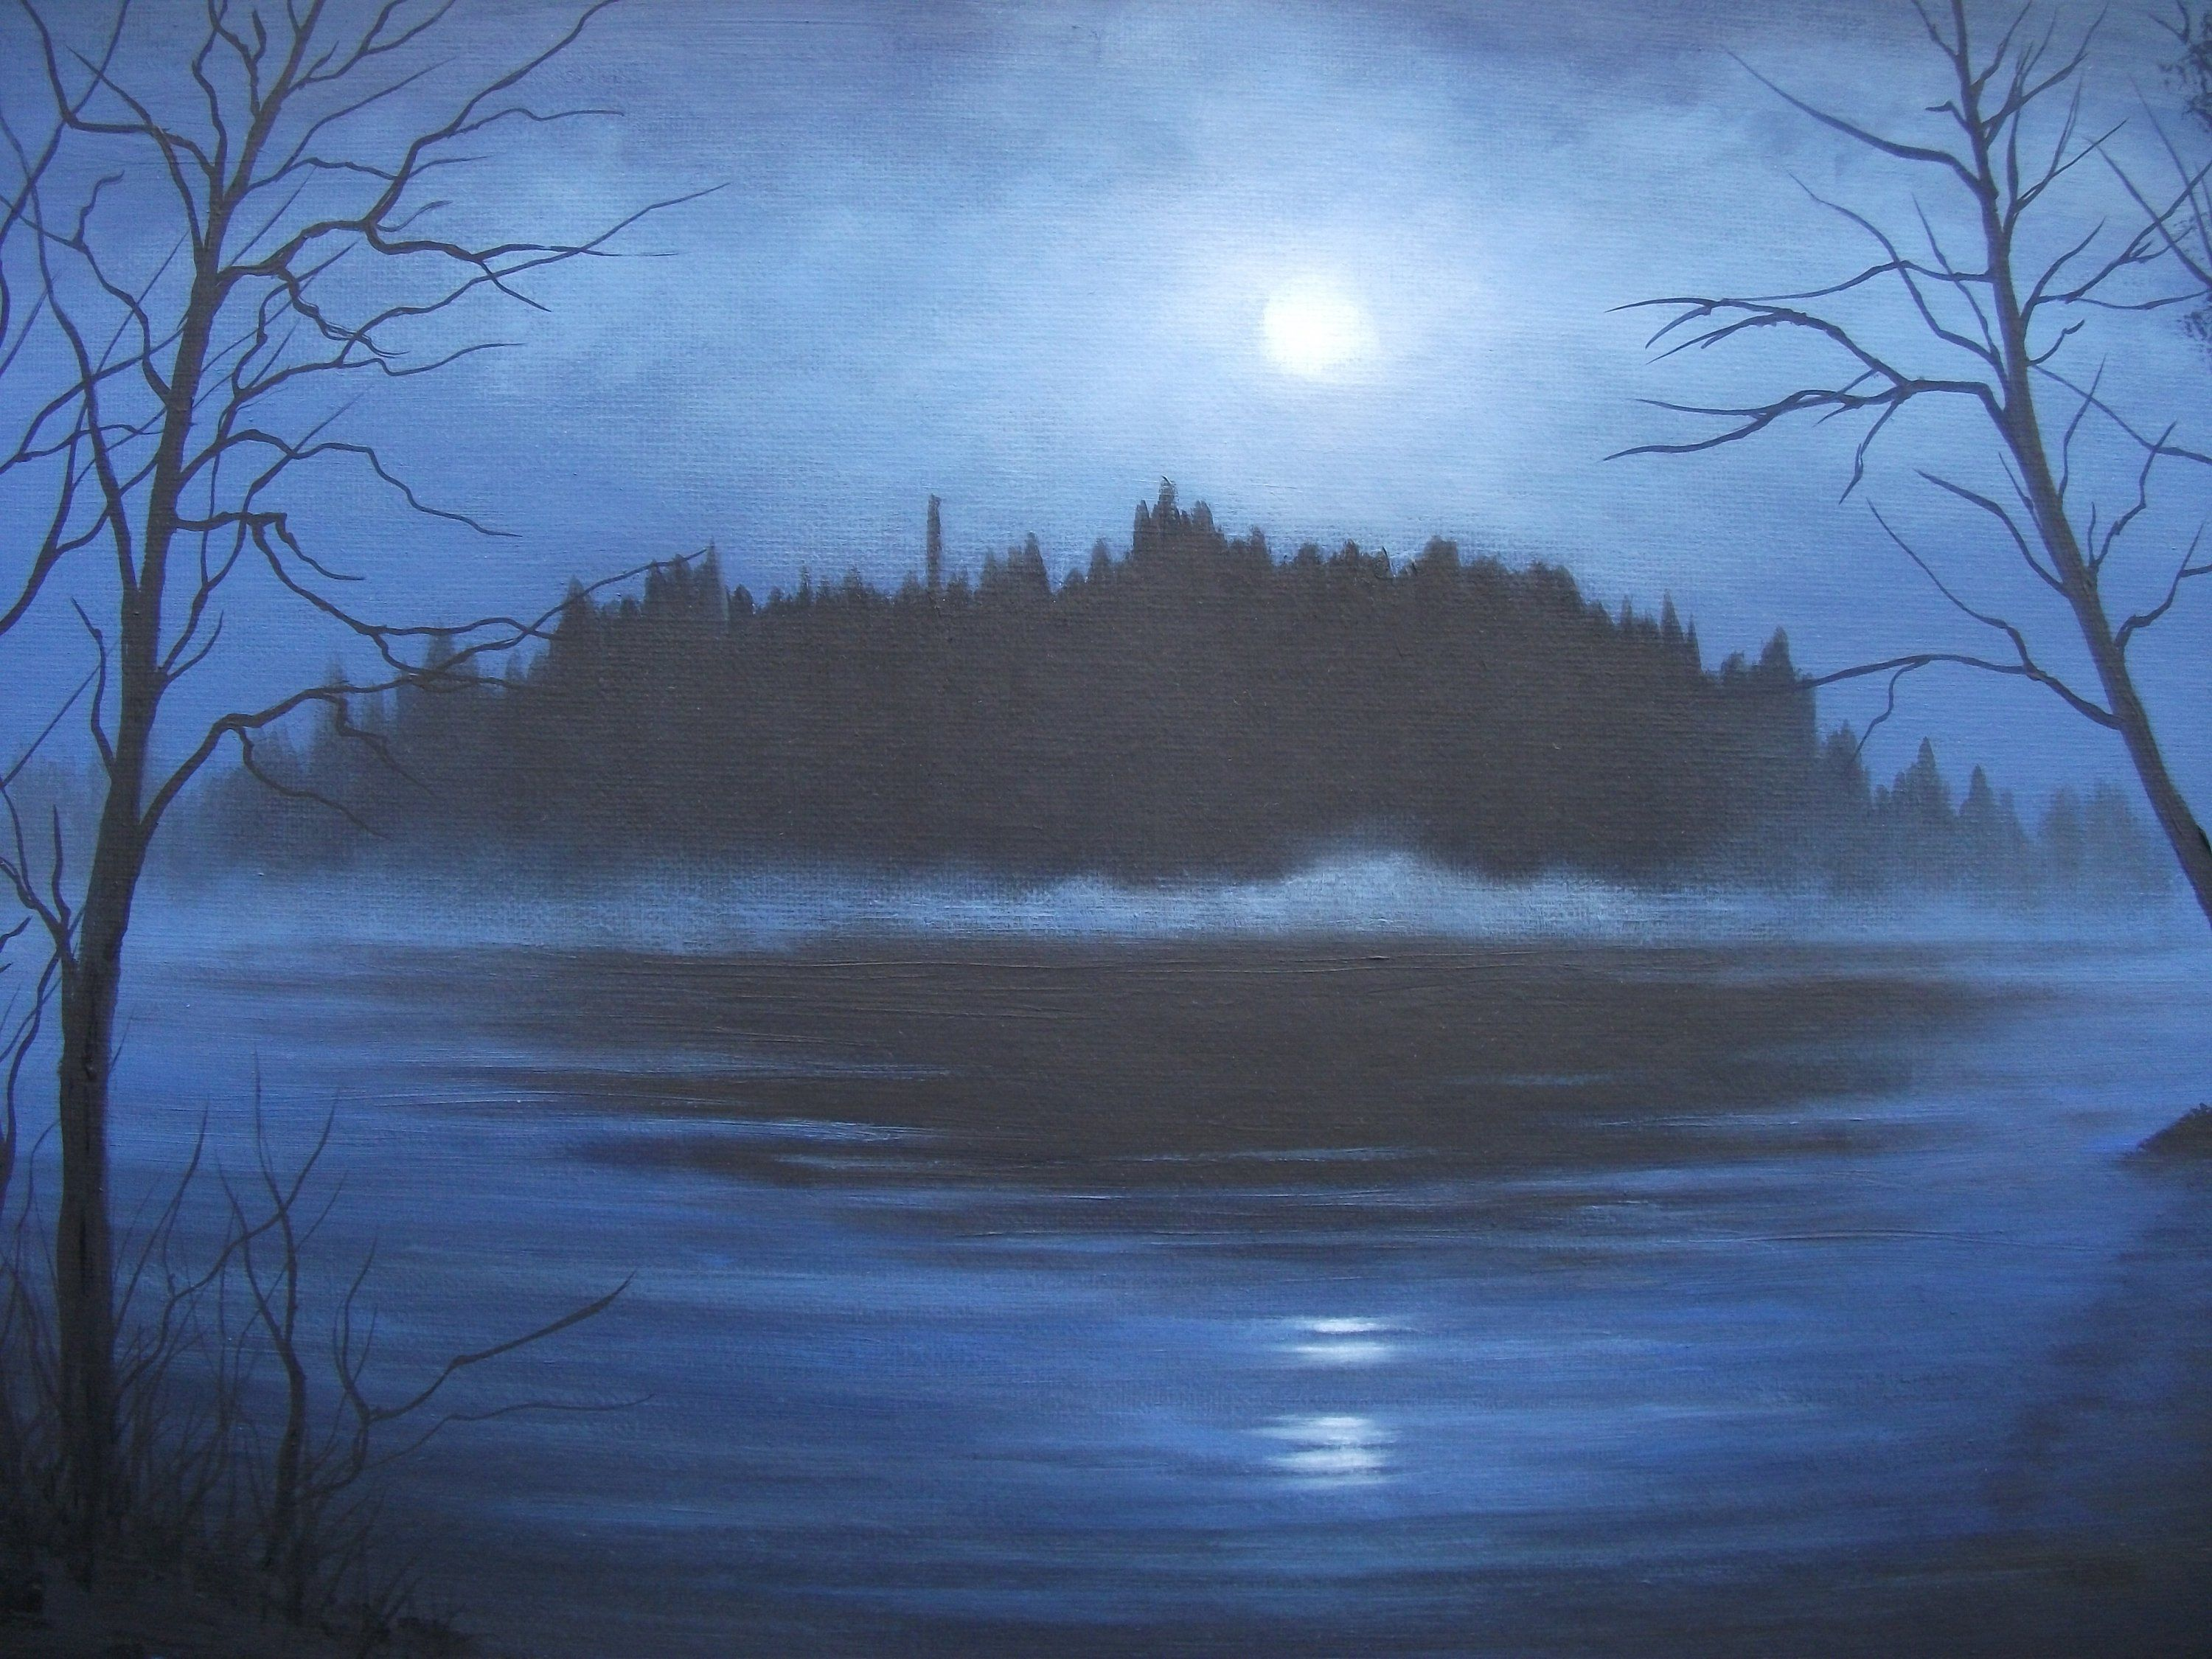 Woods Forest Lake Pond Night Moon Summer Spring Trees Reflection Clouds Original Landscape Oil Painting